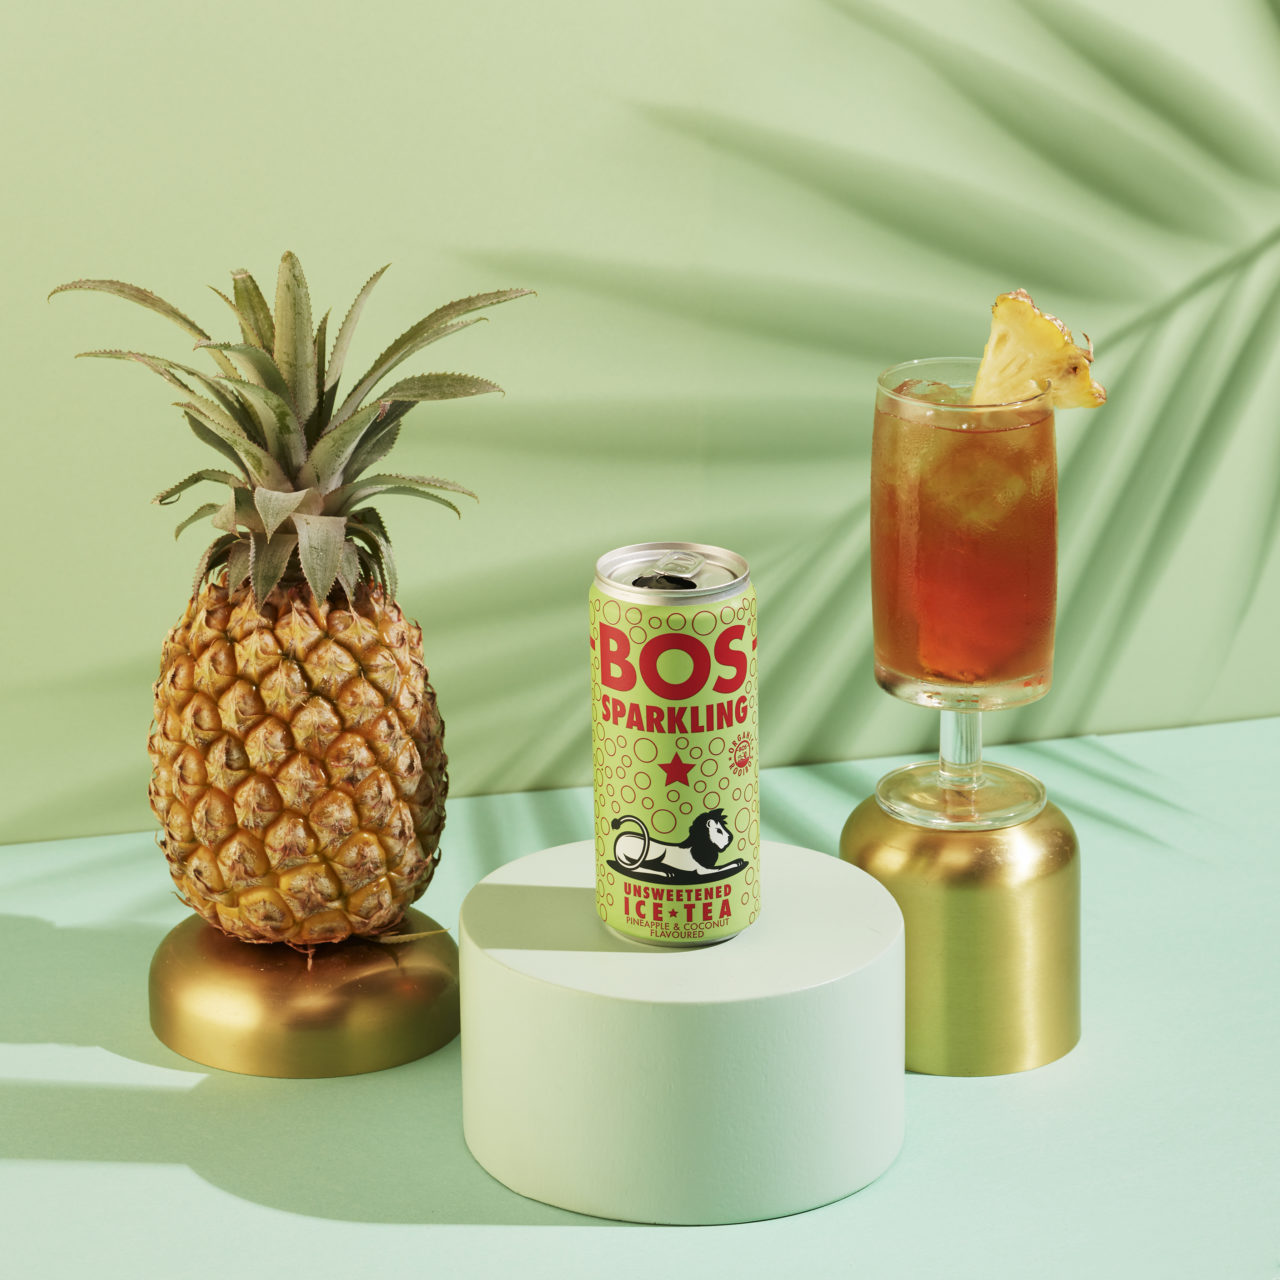 30_bos_ice_tea_sparkling_pineapple_&_coconut_sa_1305_Justin Patrick_product shoot_cape town